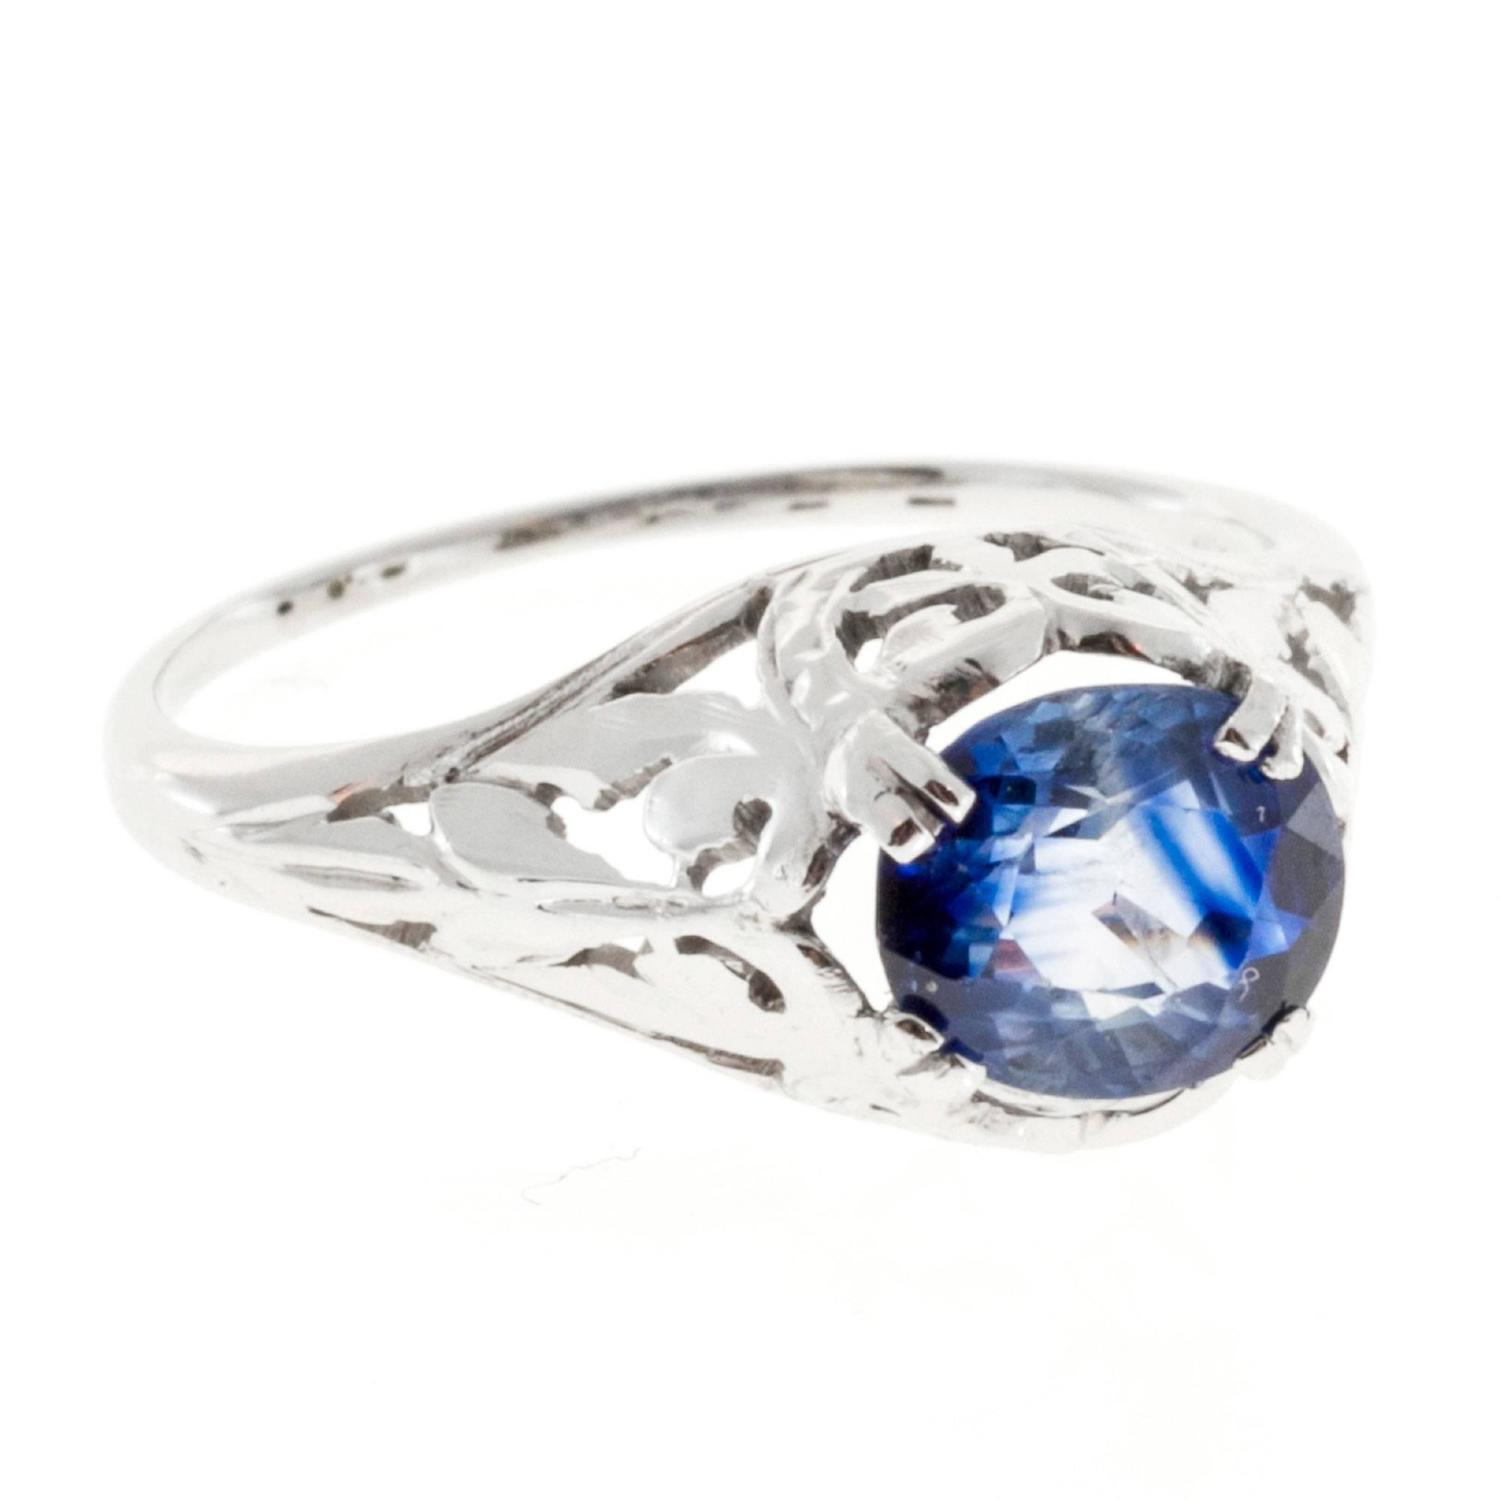 Oval Sapphire Filigree Gold Engagement Ring For Sale at 1stdibs